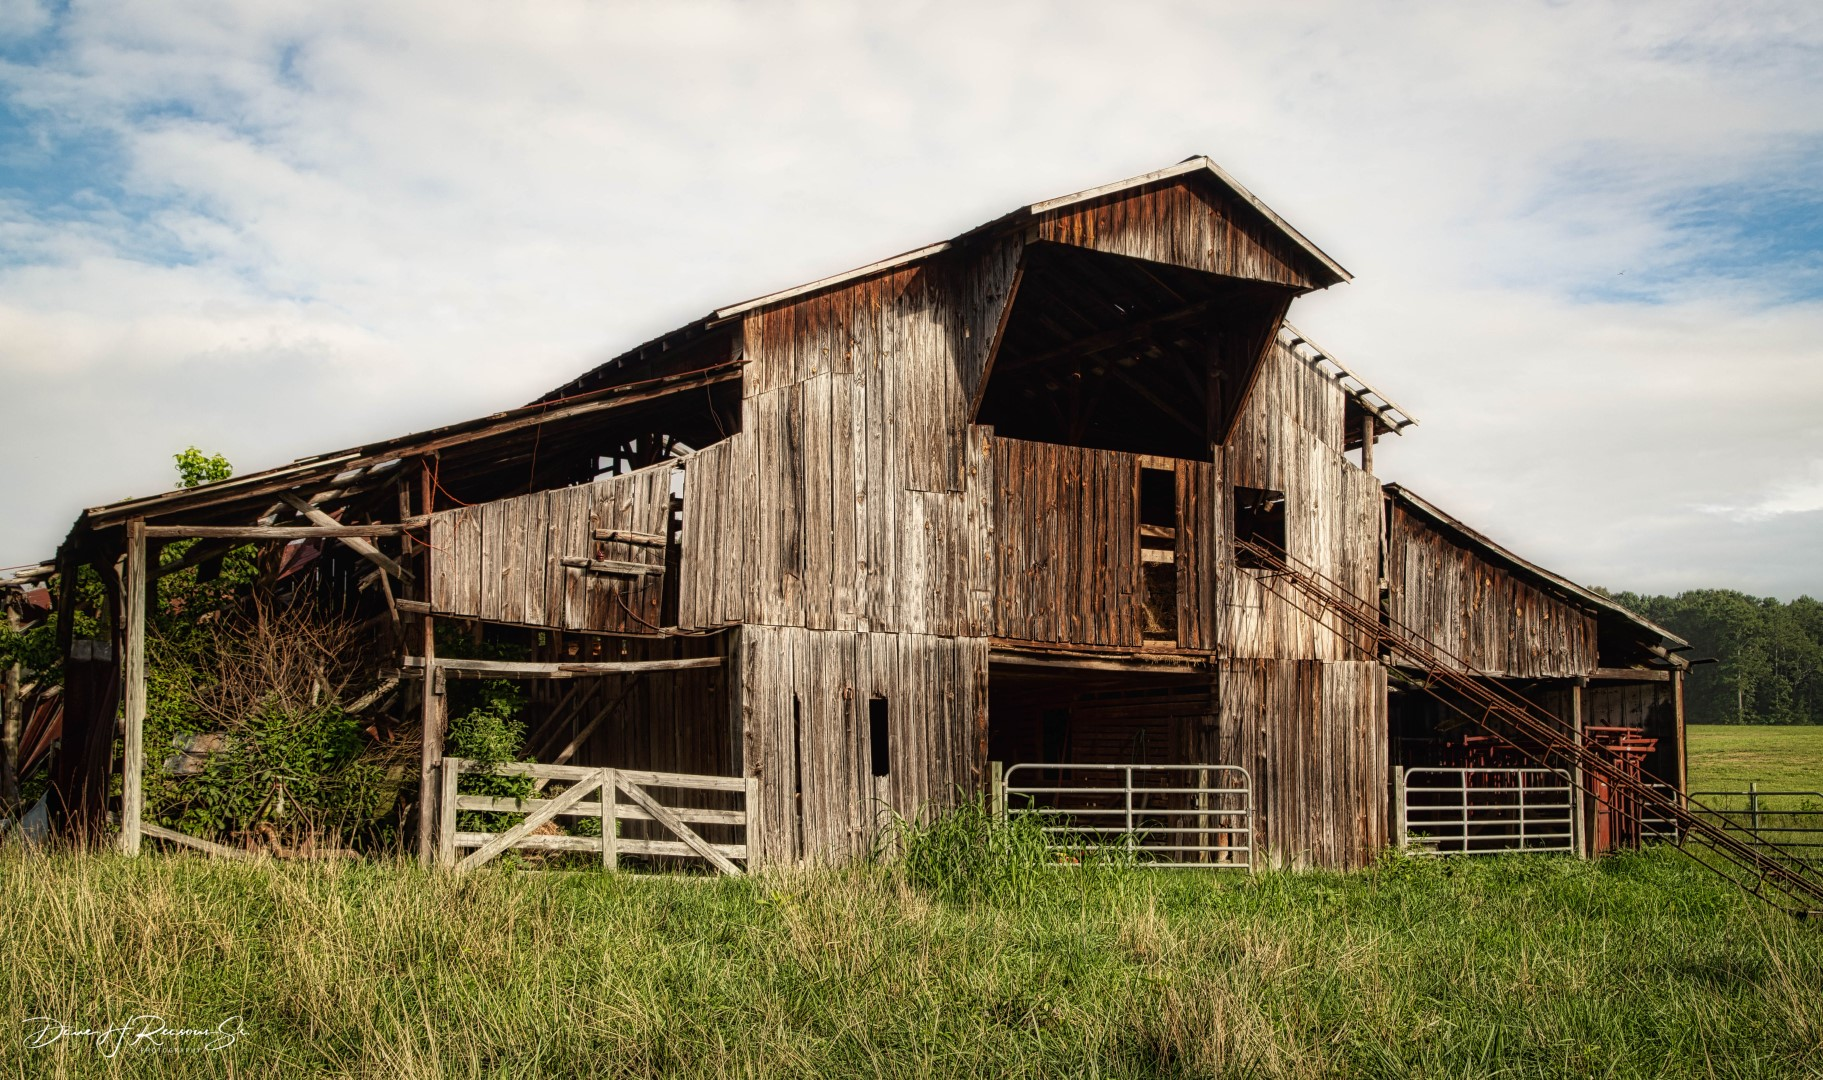 This old barn is about to collaspe into itself.